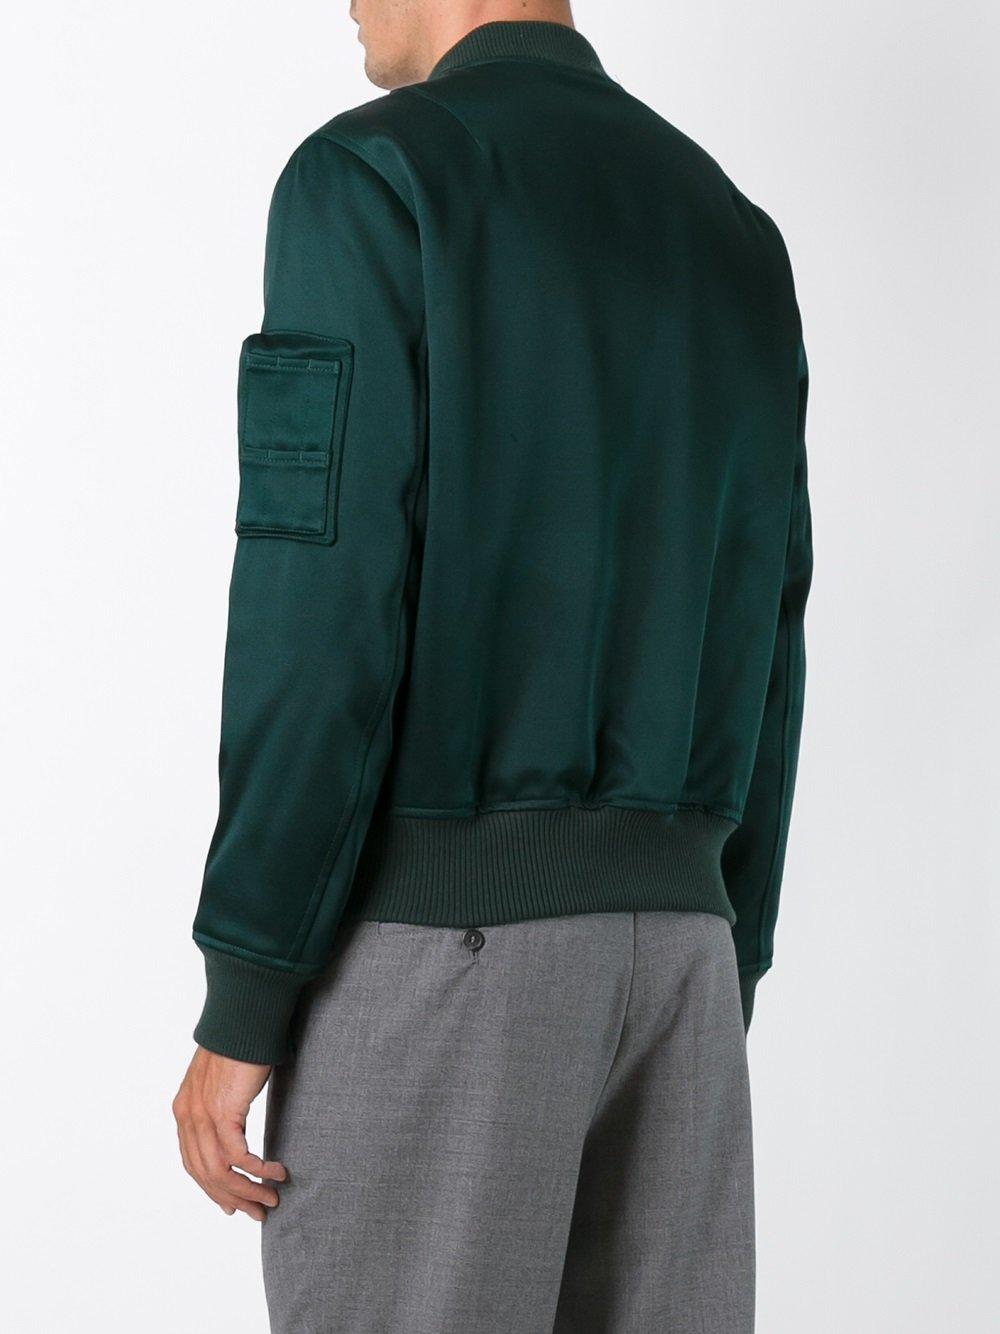 AMI Cotton Zipped Bomber Jacket in Green for Men